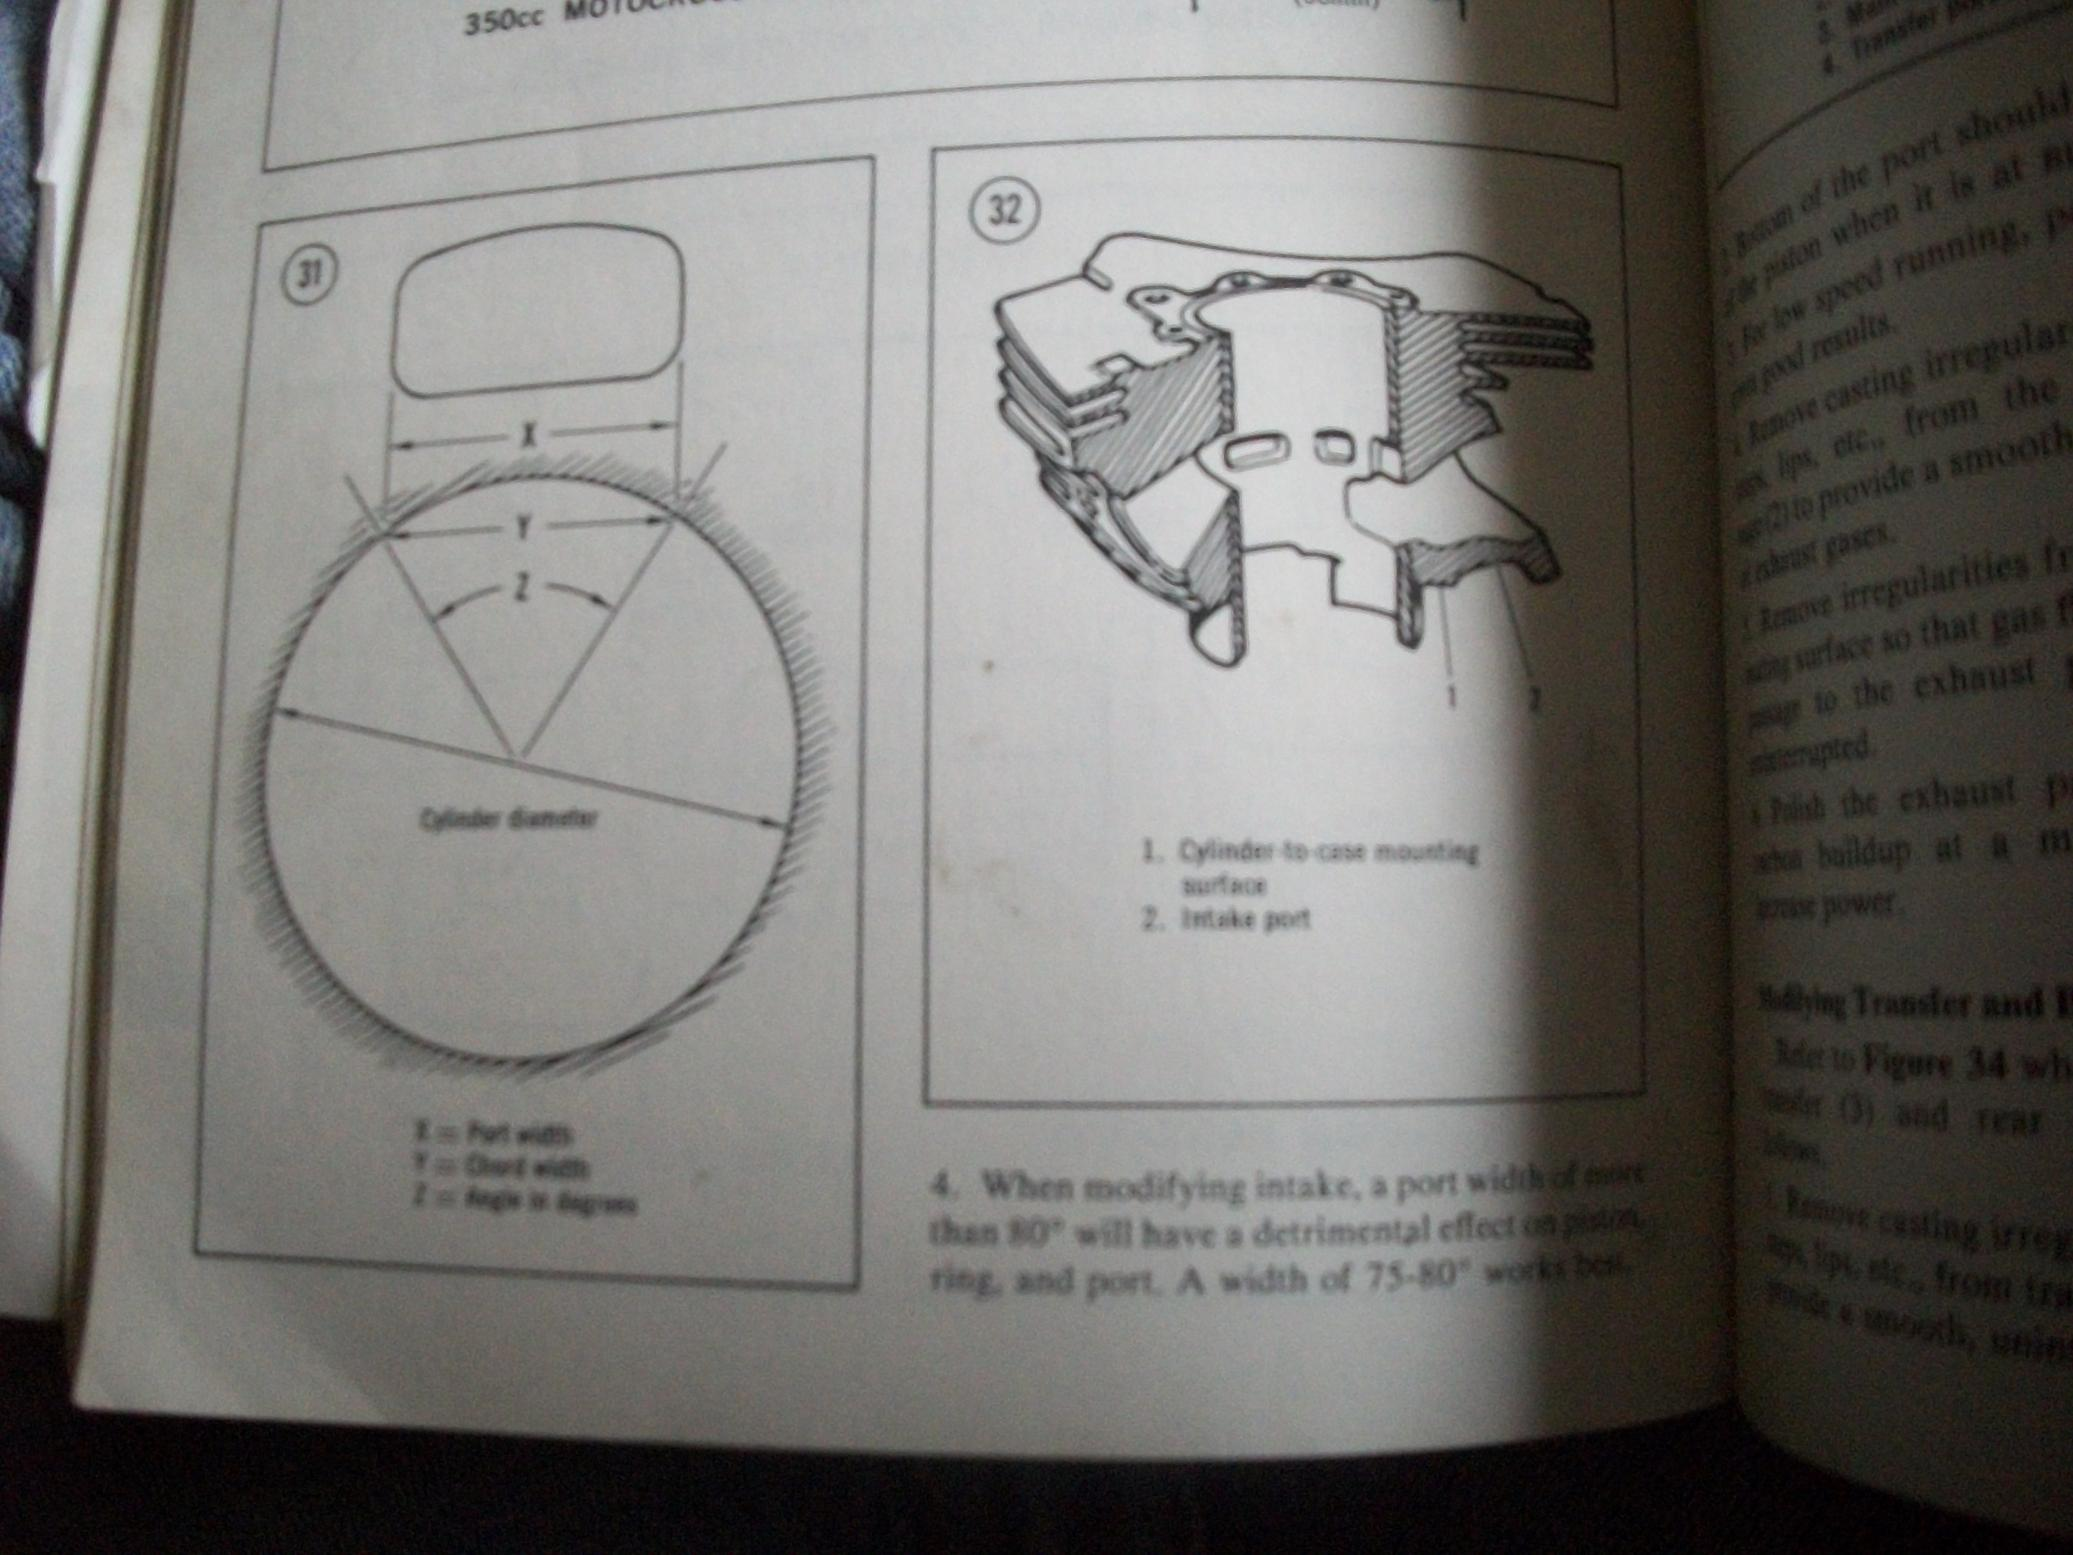 Yamaha Porting Book Dt 125 Mx Wiring Diagram You Do With This Info Is Your Choice Not Compain That Some One Was Nice Enough To Make Avalible Online As Wont Find It Anywhere Else